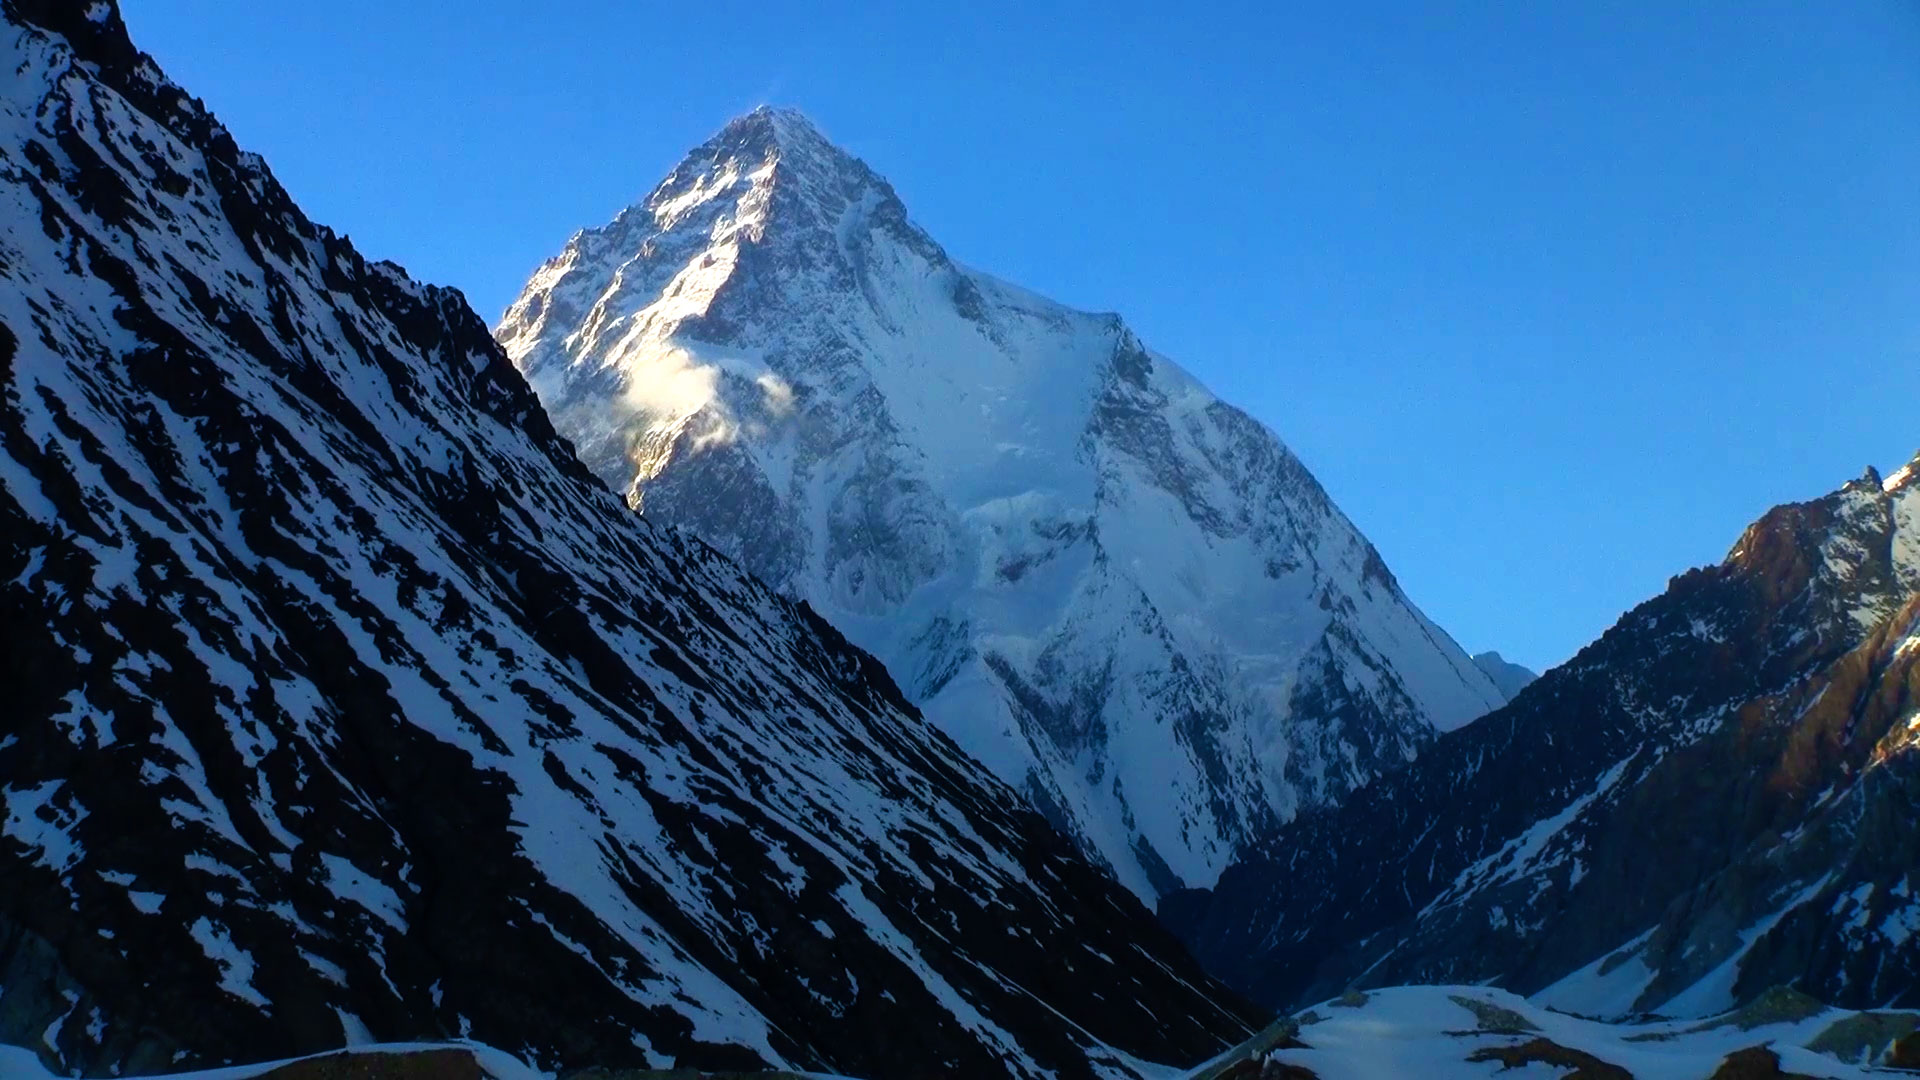 Hd Wallpaper Pack The Rest Of Everest An Almost Unabridged Expedition